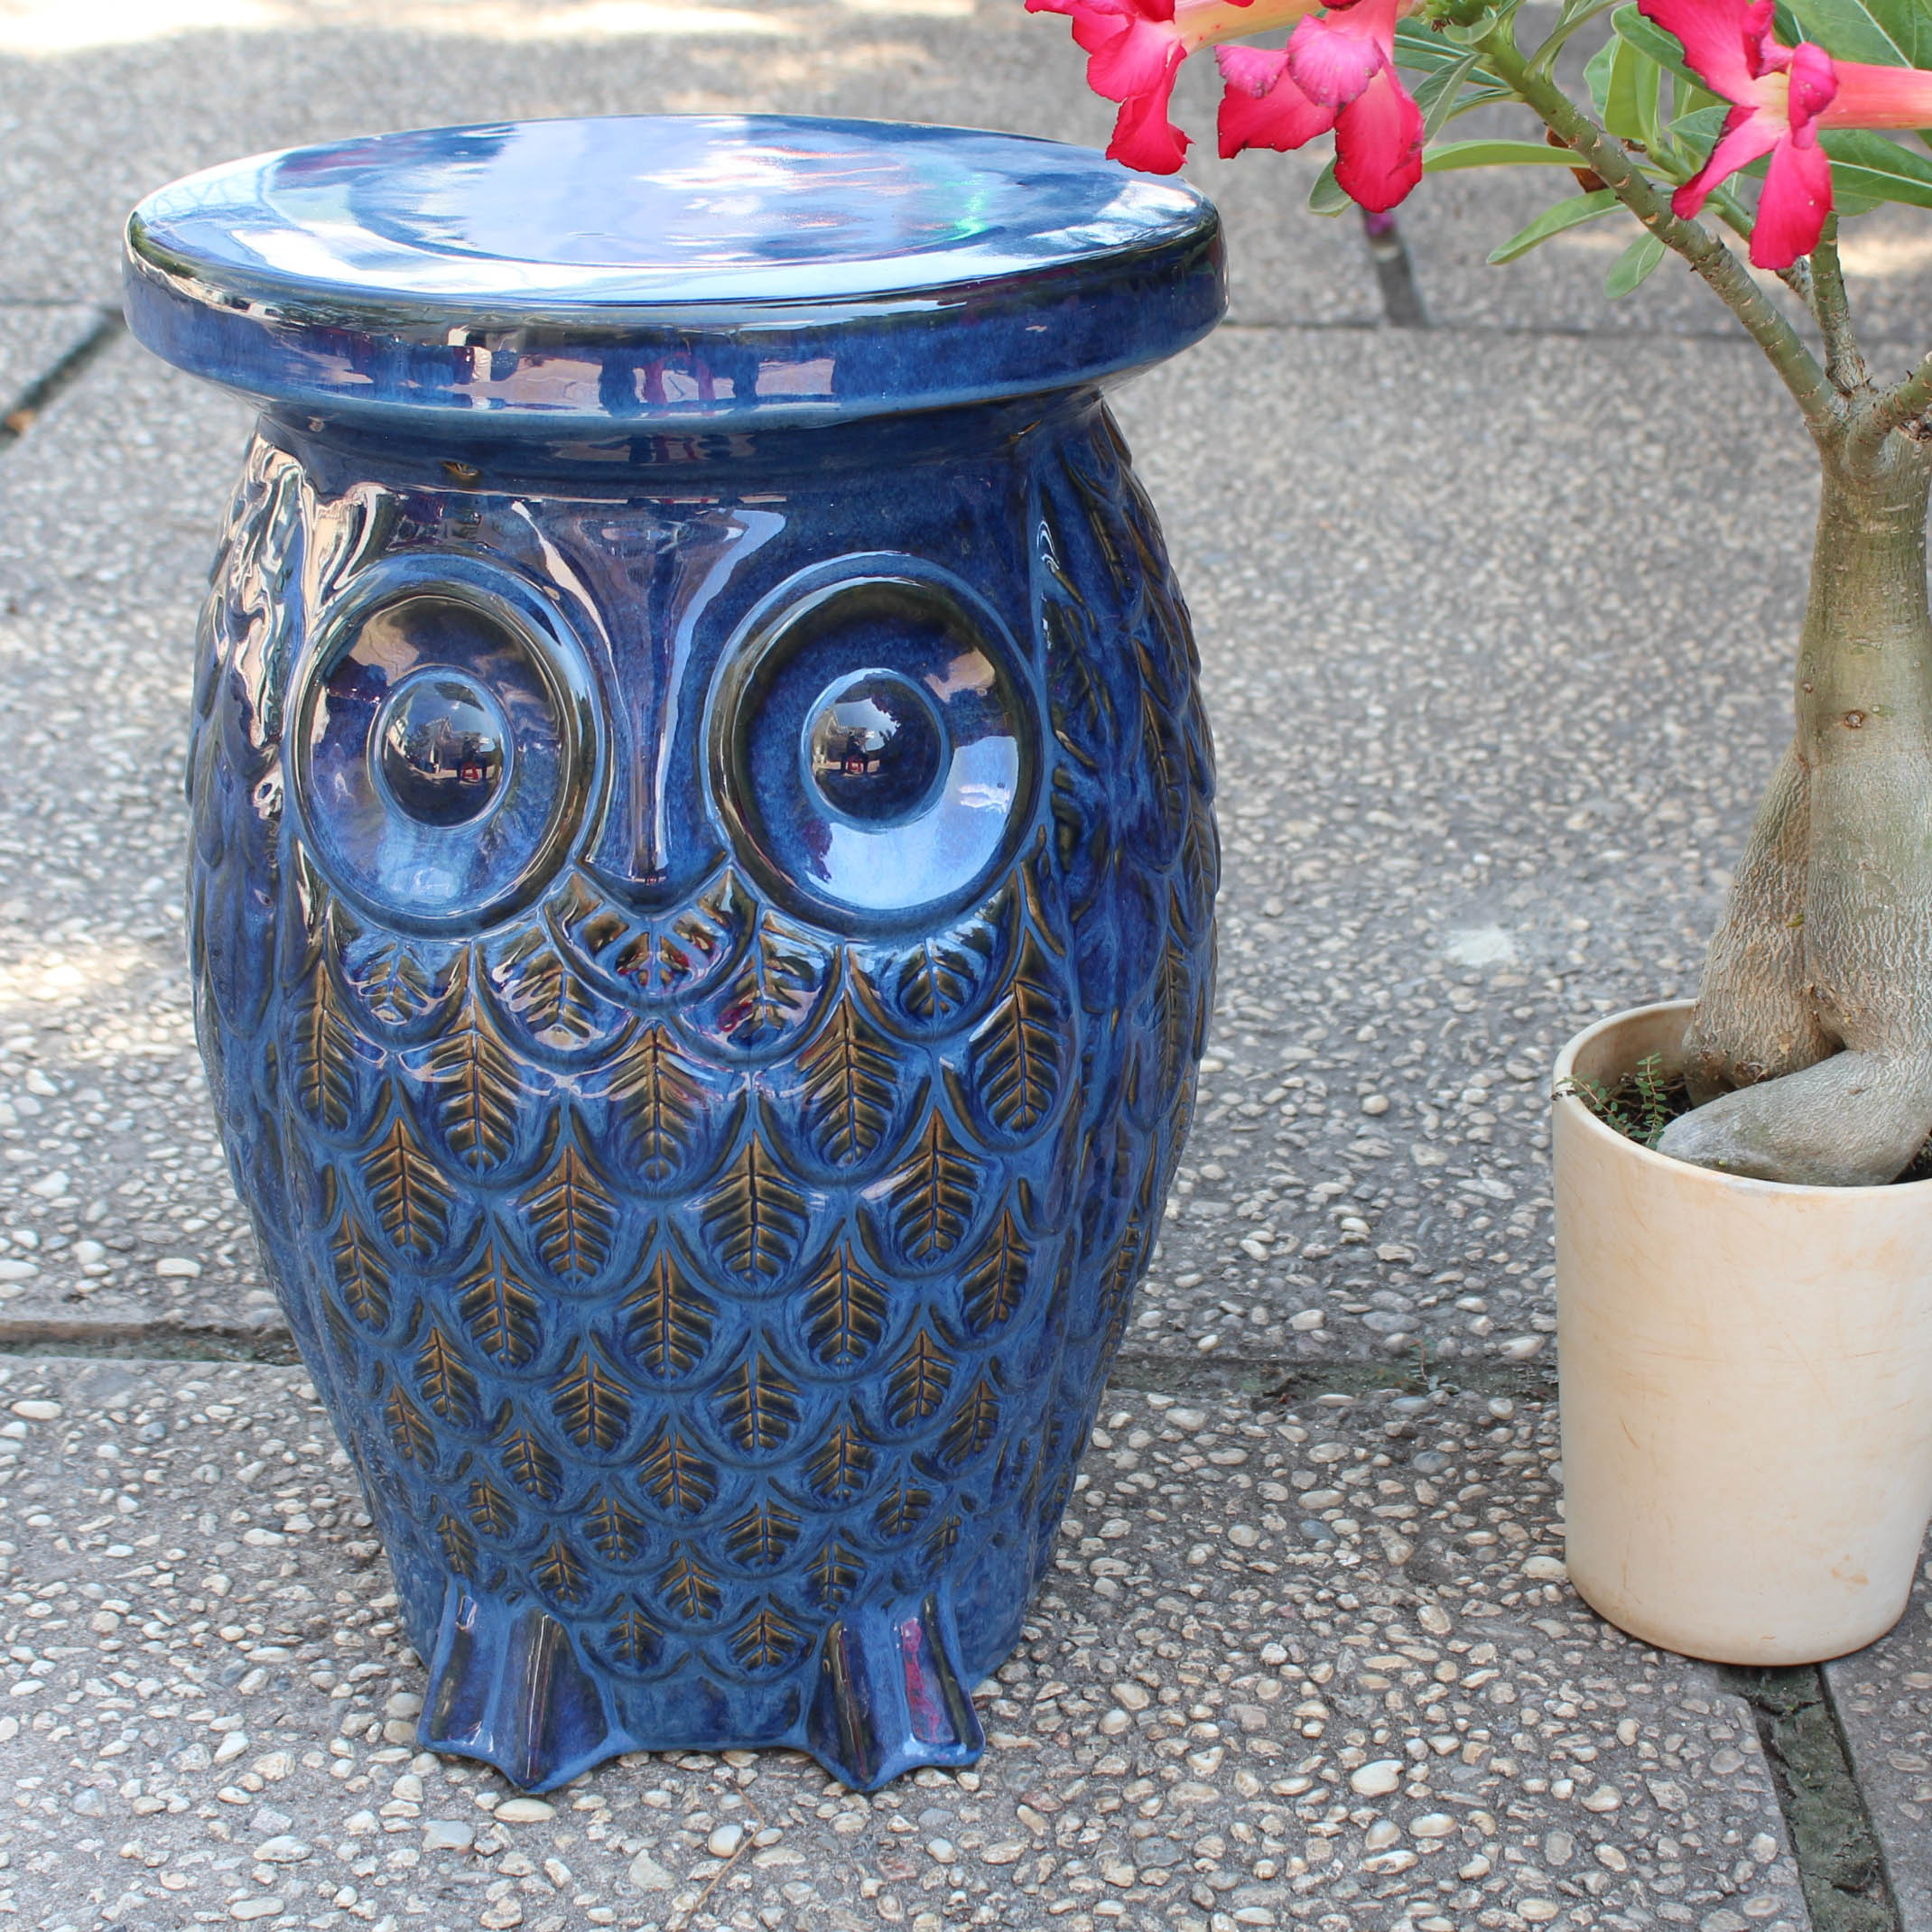 Wise Old Owl Ceramic Garden Stool